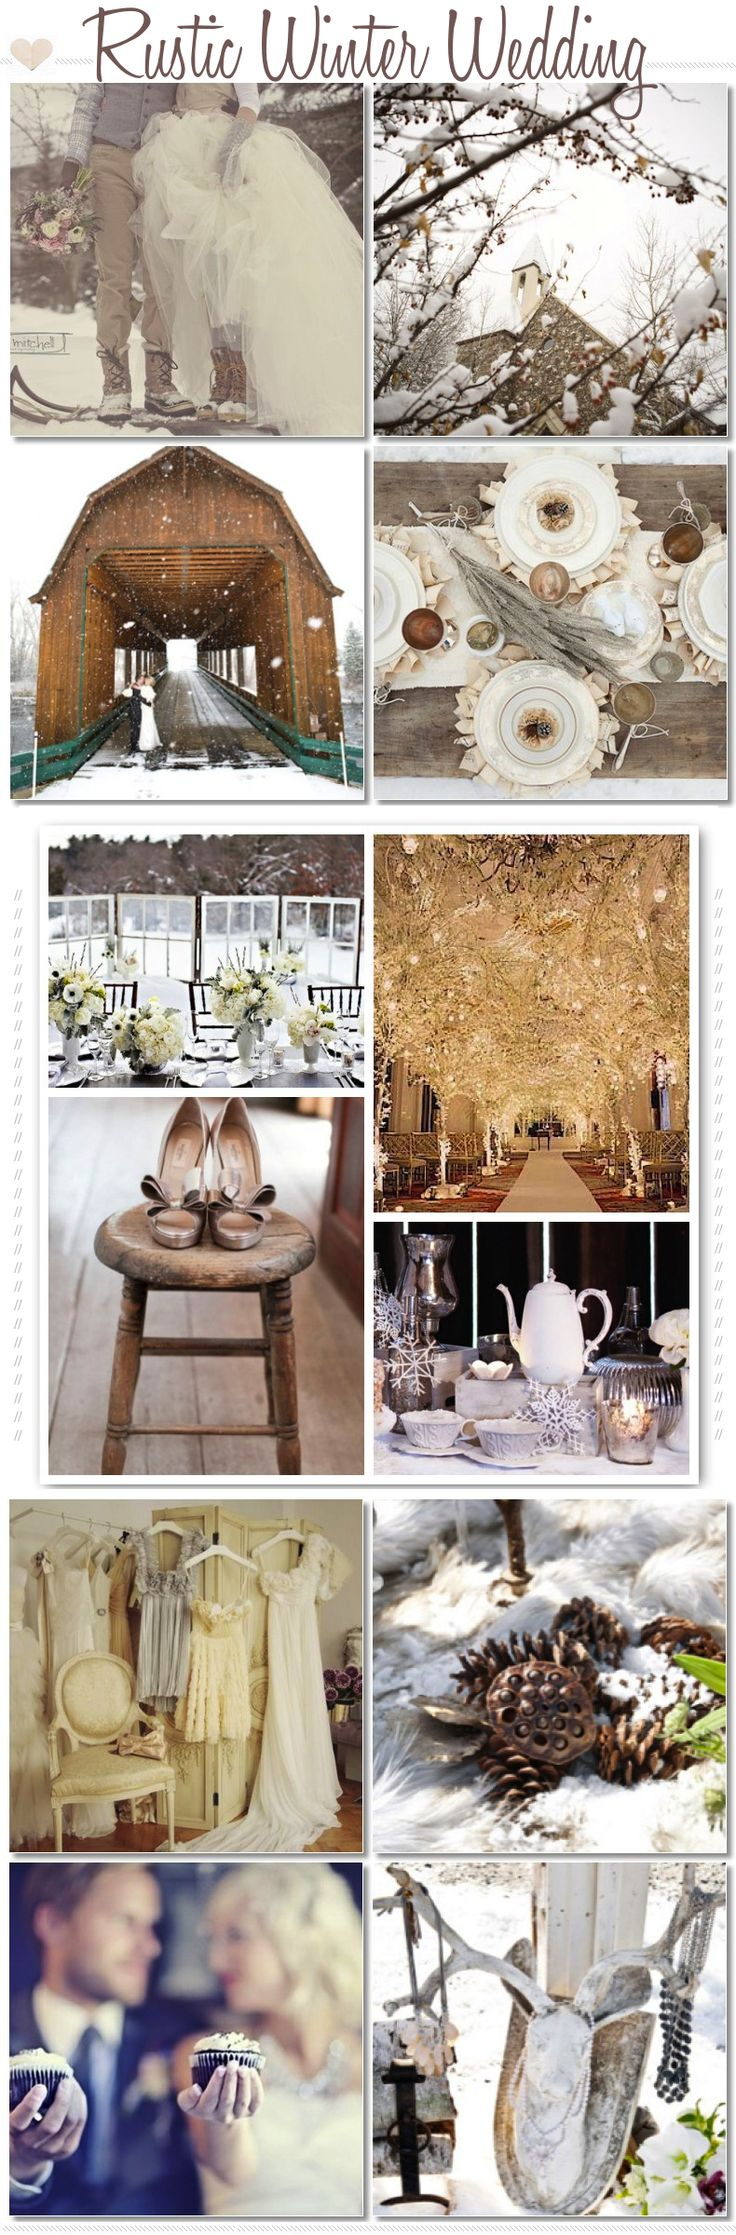 rustic winter wedding...I wouldn't want an winter wedding but this really pretty. Slightly makes me think of Narnia.